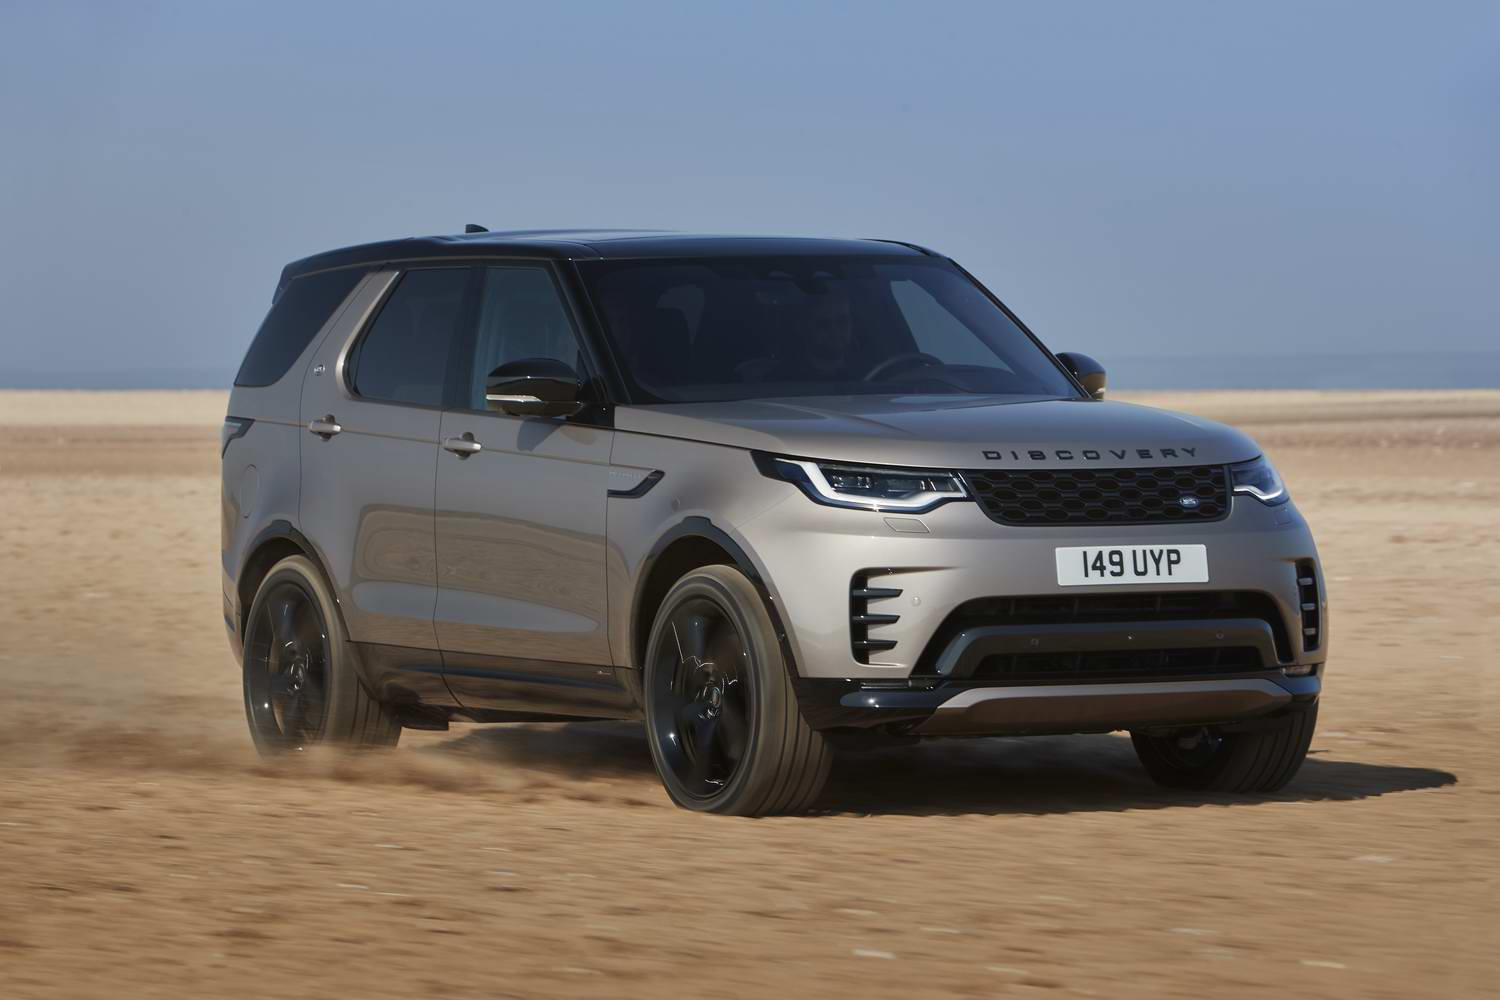 Car News | Land Rover shows off 2021 Discovery | CompleteCar.ie